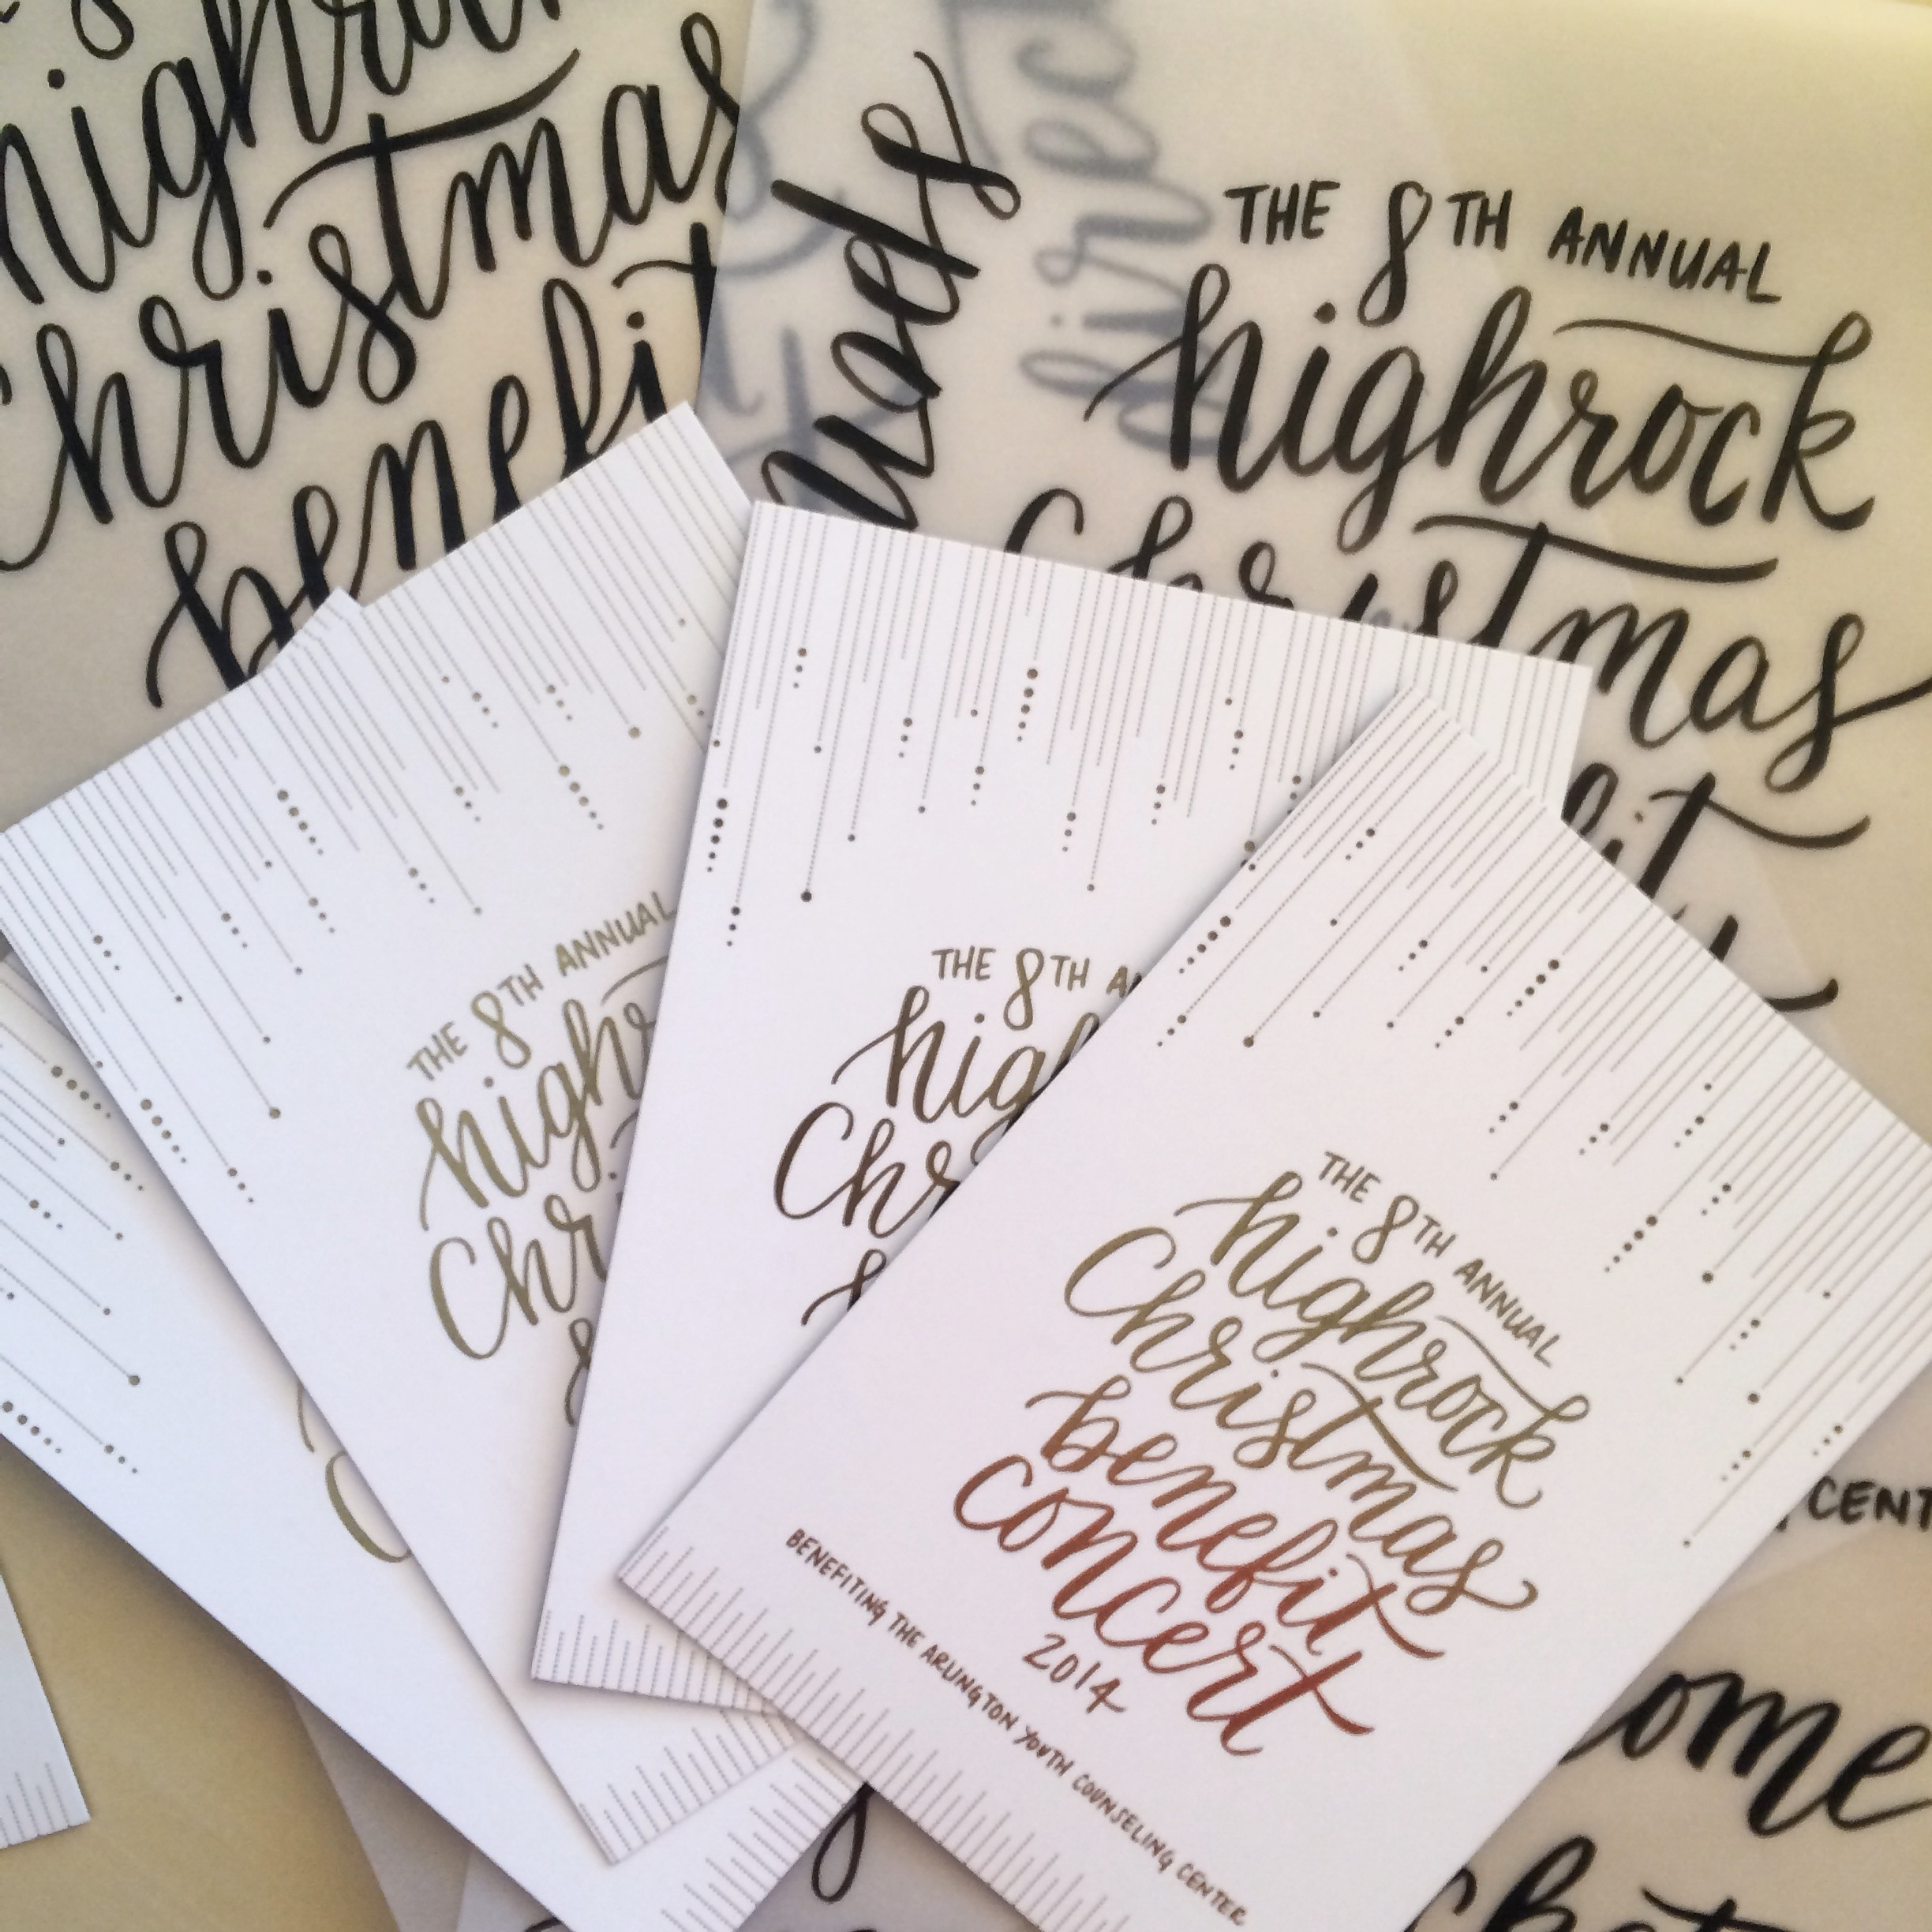 lettering for invitations and branding for Highrock Christmas Benefit Concert 2014